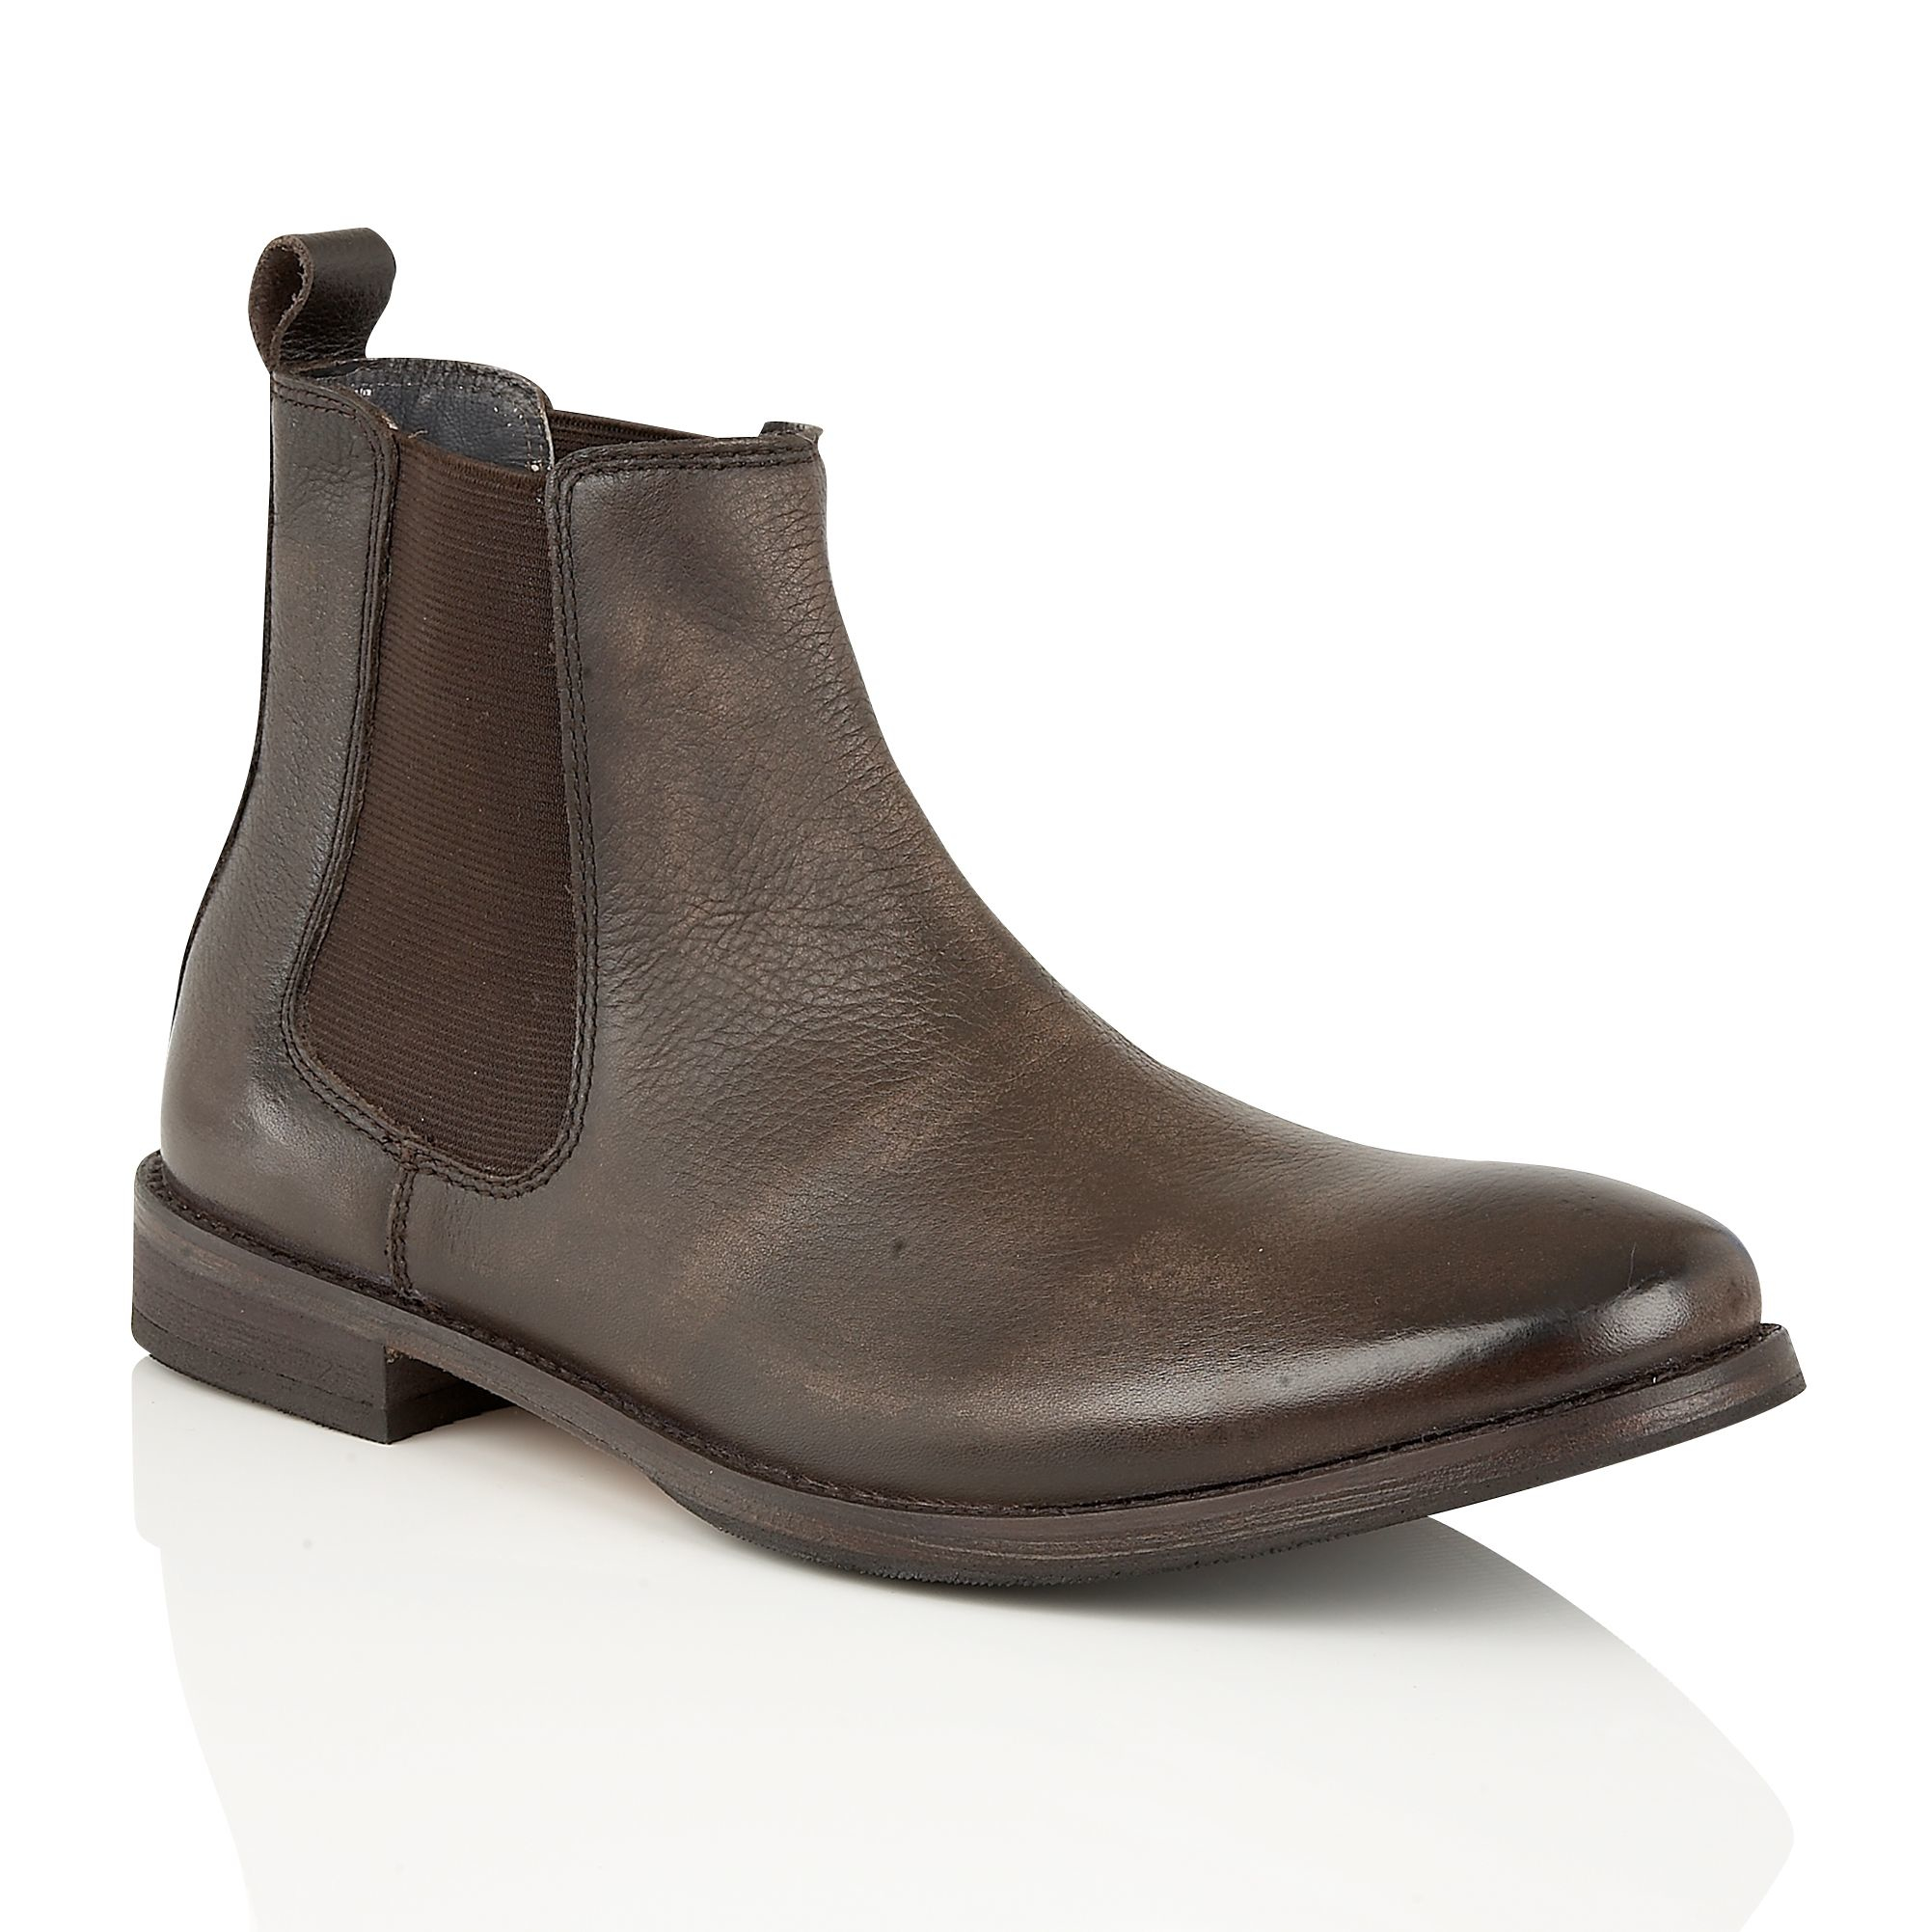 frank wright omar mens slip on gusset boots in brown for